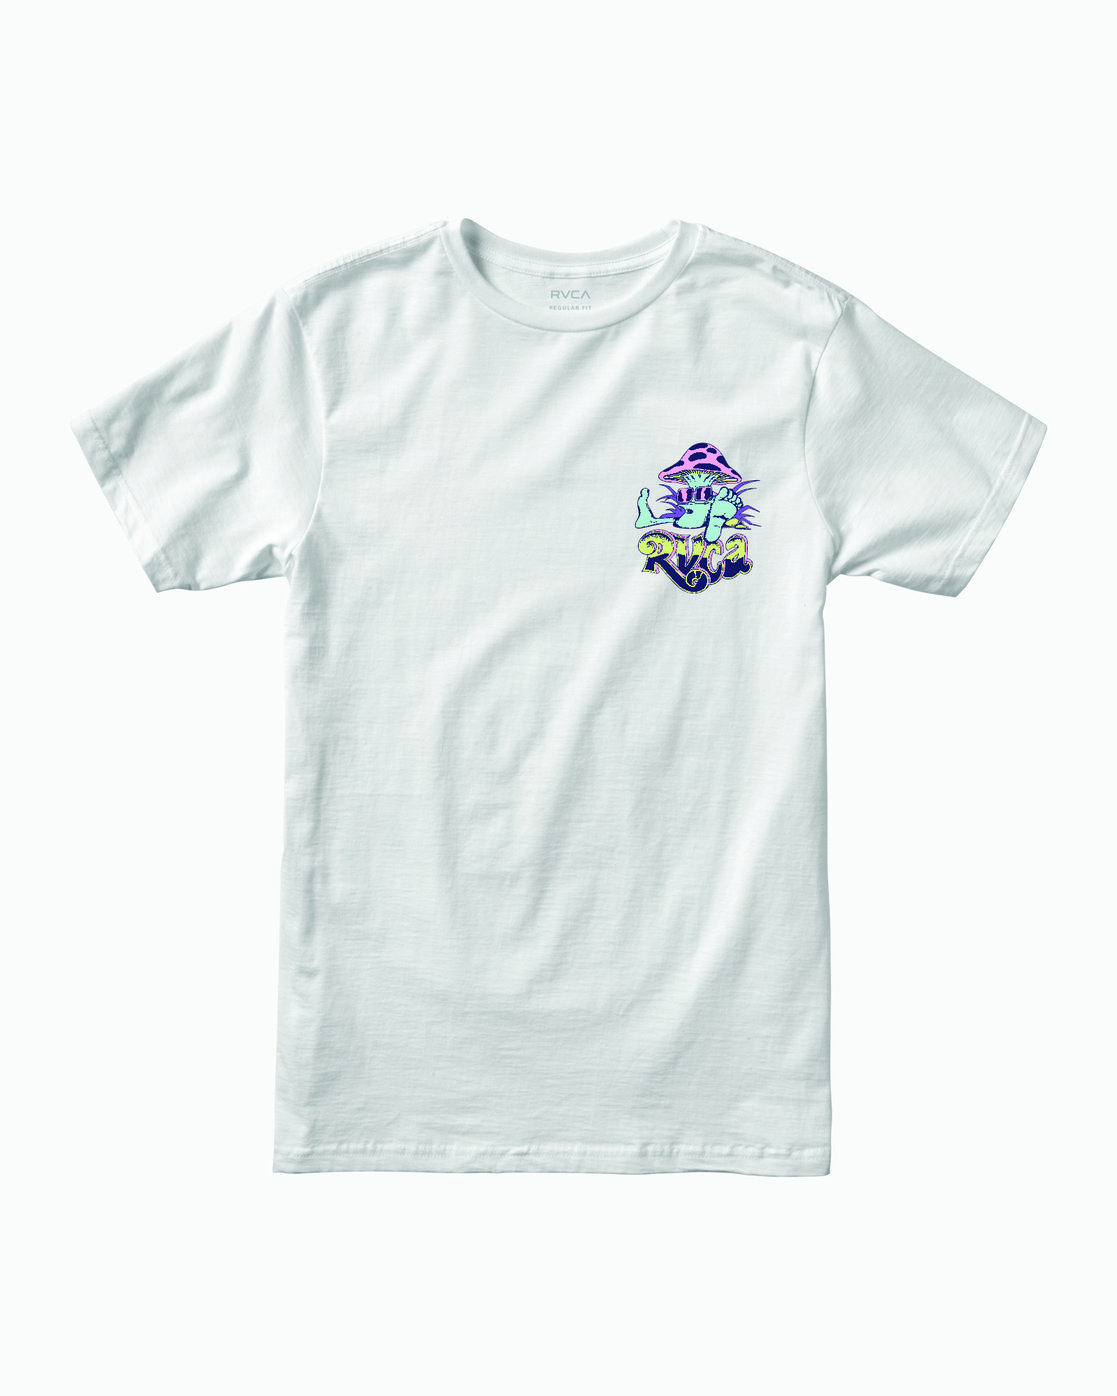 0 MUSHY KID T-SHIRT White M4011RMU RVCA